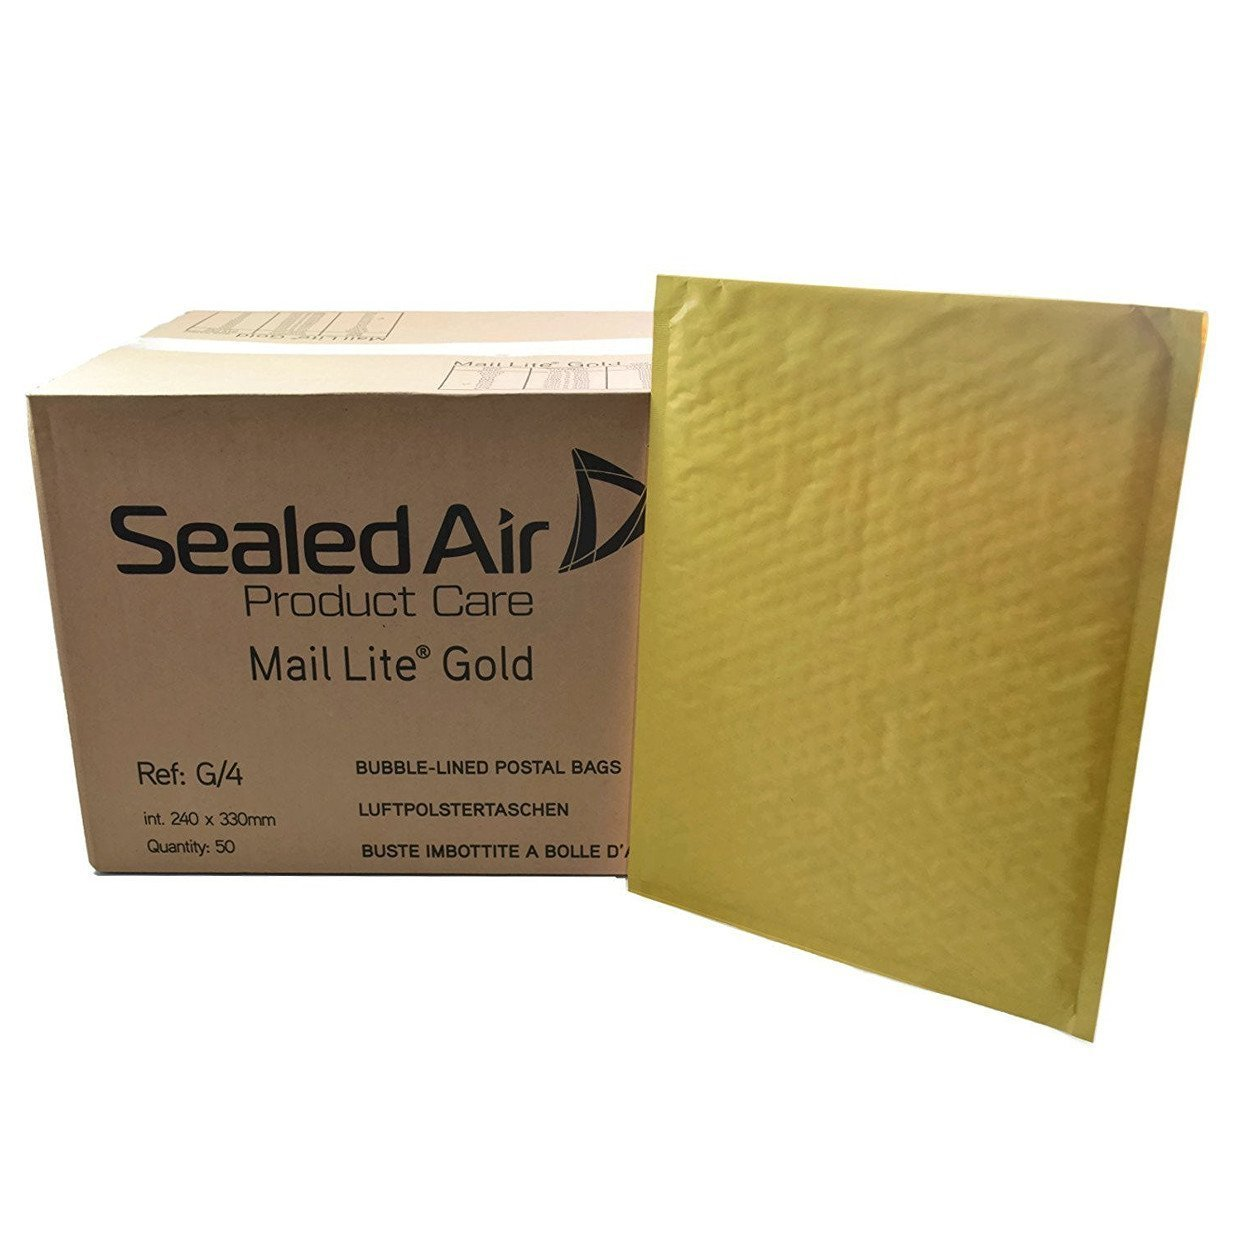 Buste bolle aria Aircap f.to int 24x33 cm (conf. 50 pz.) Sealed Air MLGG/4